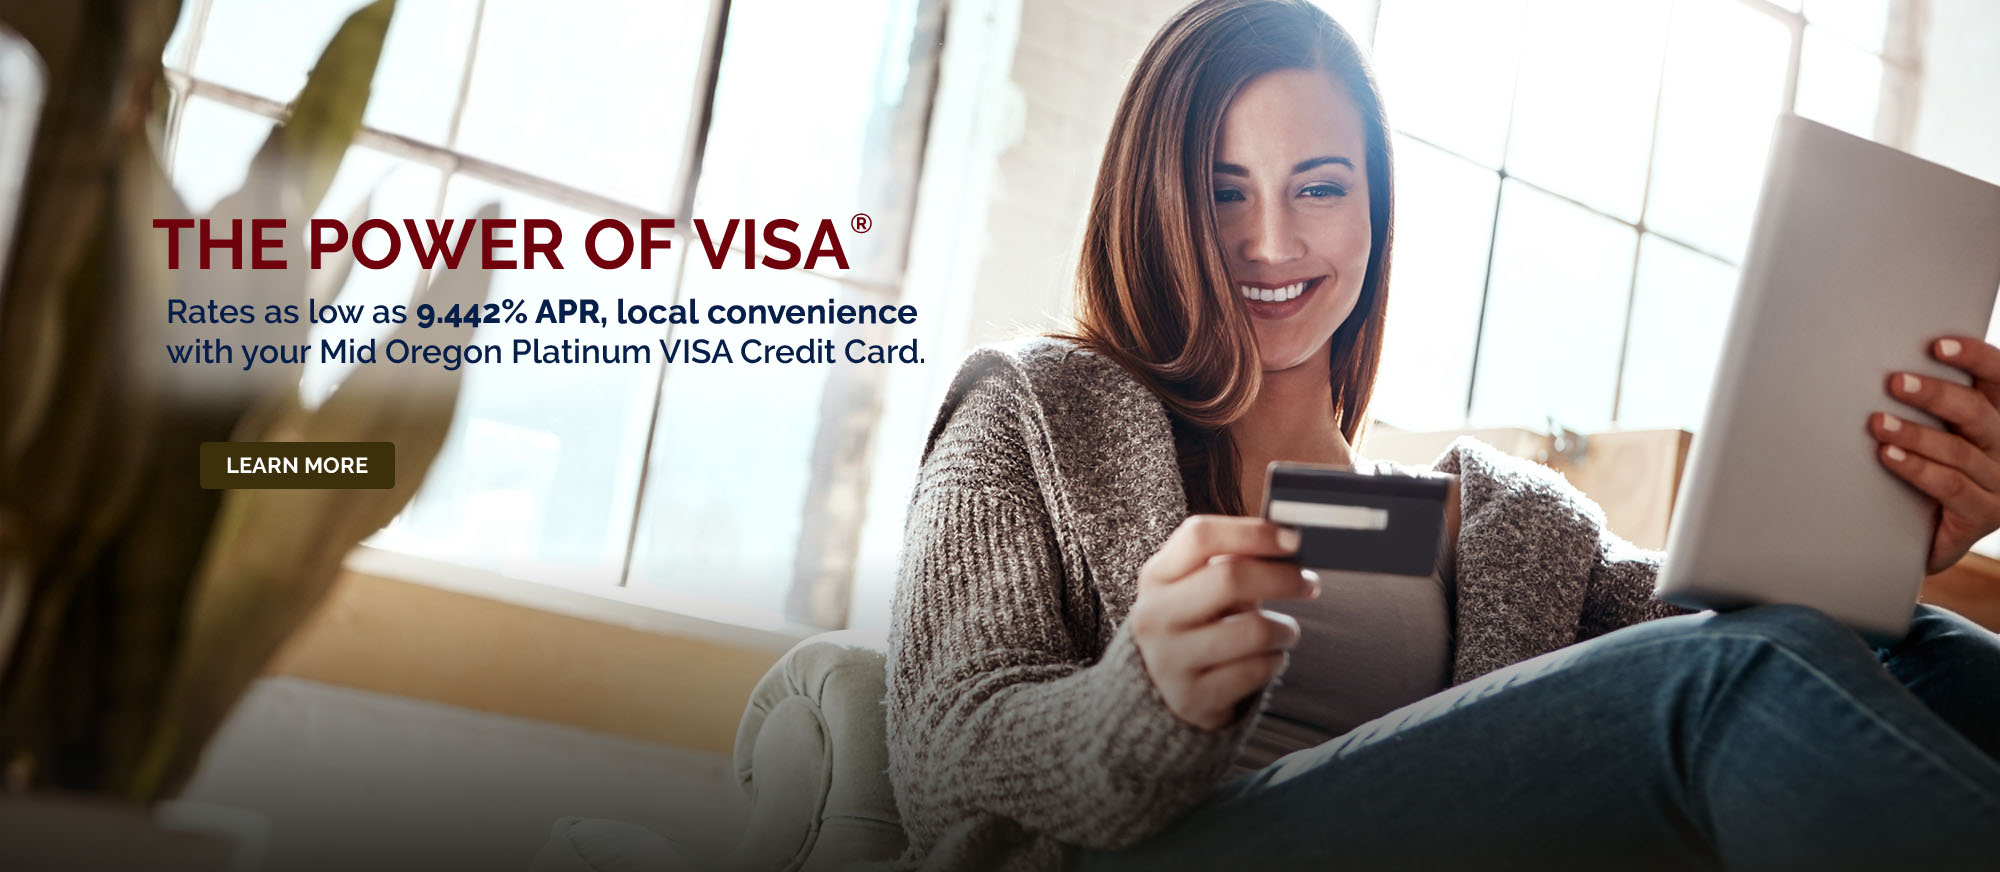 Woman relaxing and shopping online holding VISA Credit Card